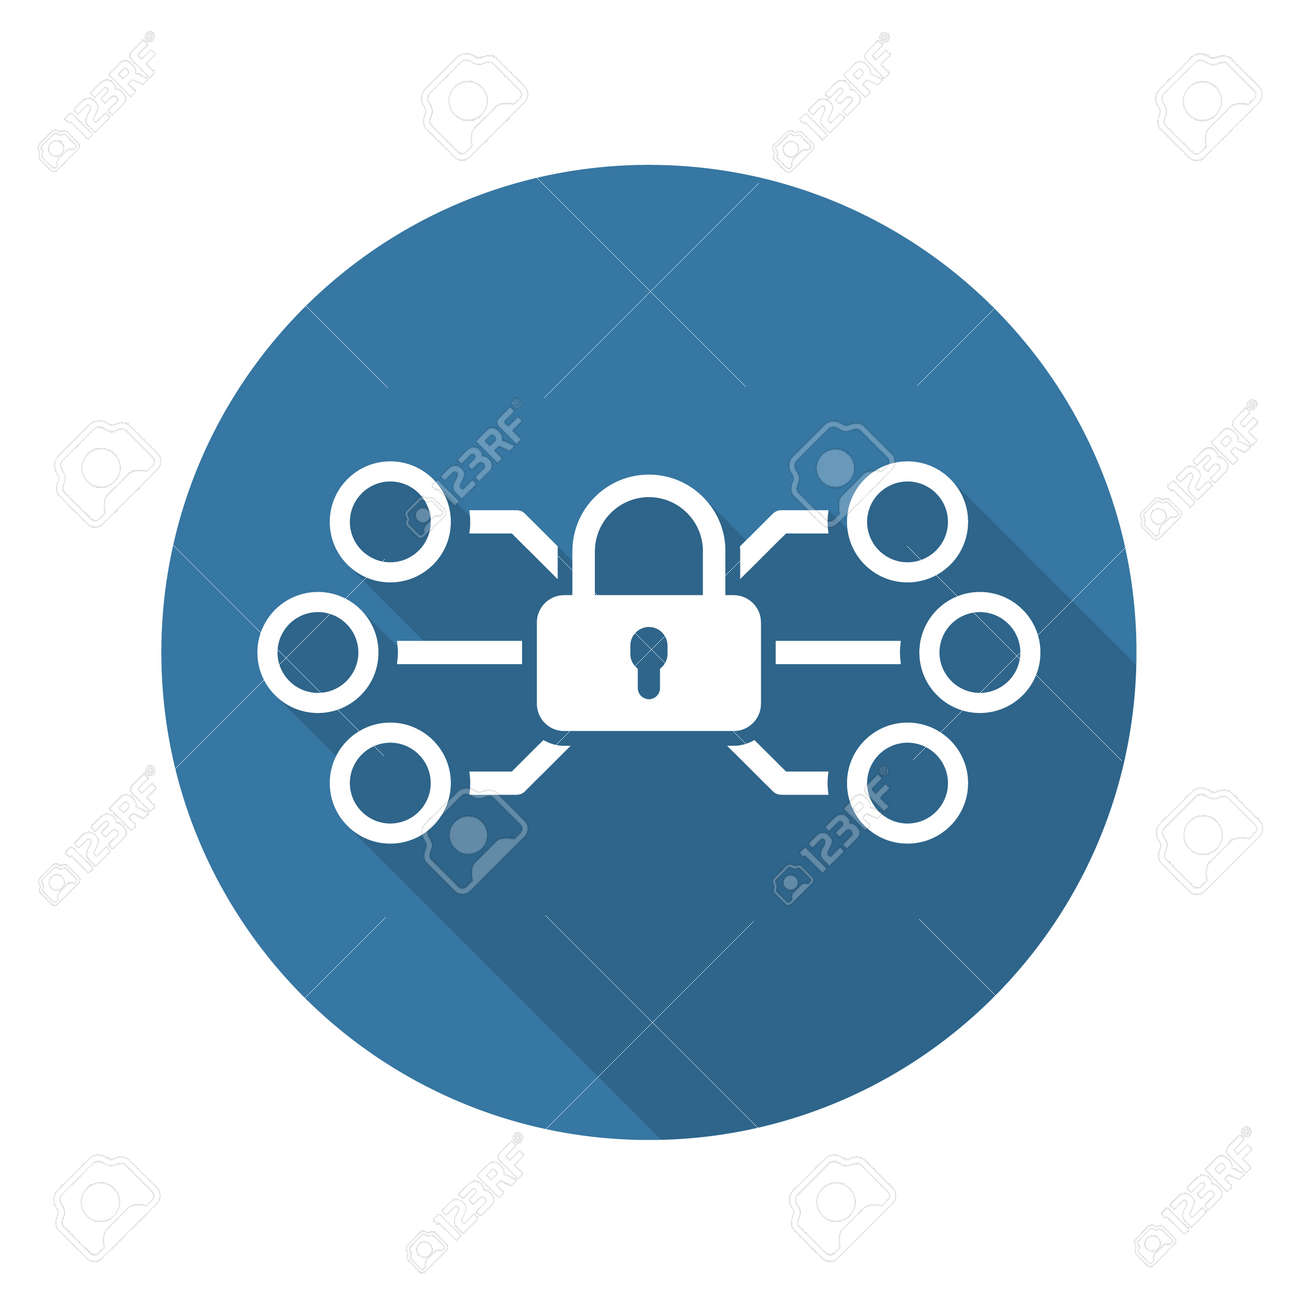 Network Protection Icon. Flat Design. Business Concept. Isolated Illustration. - 48846709